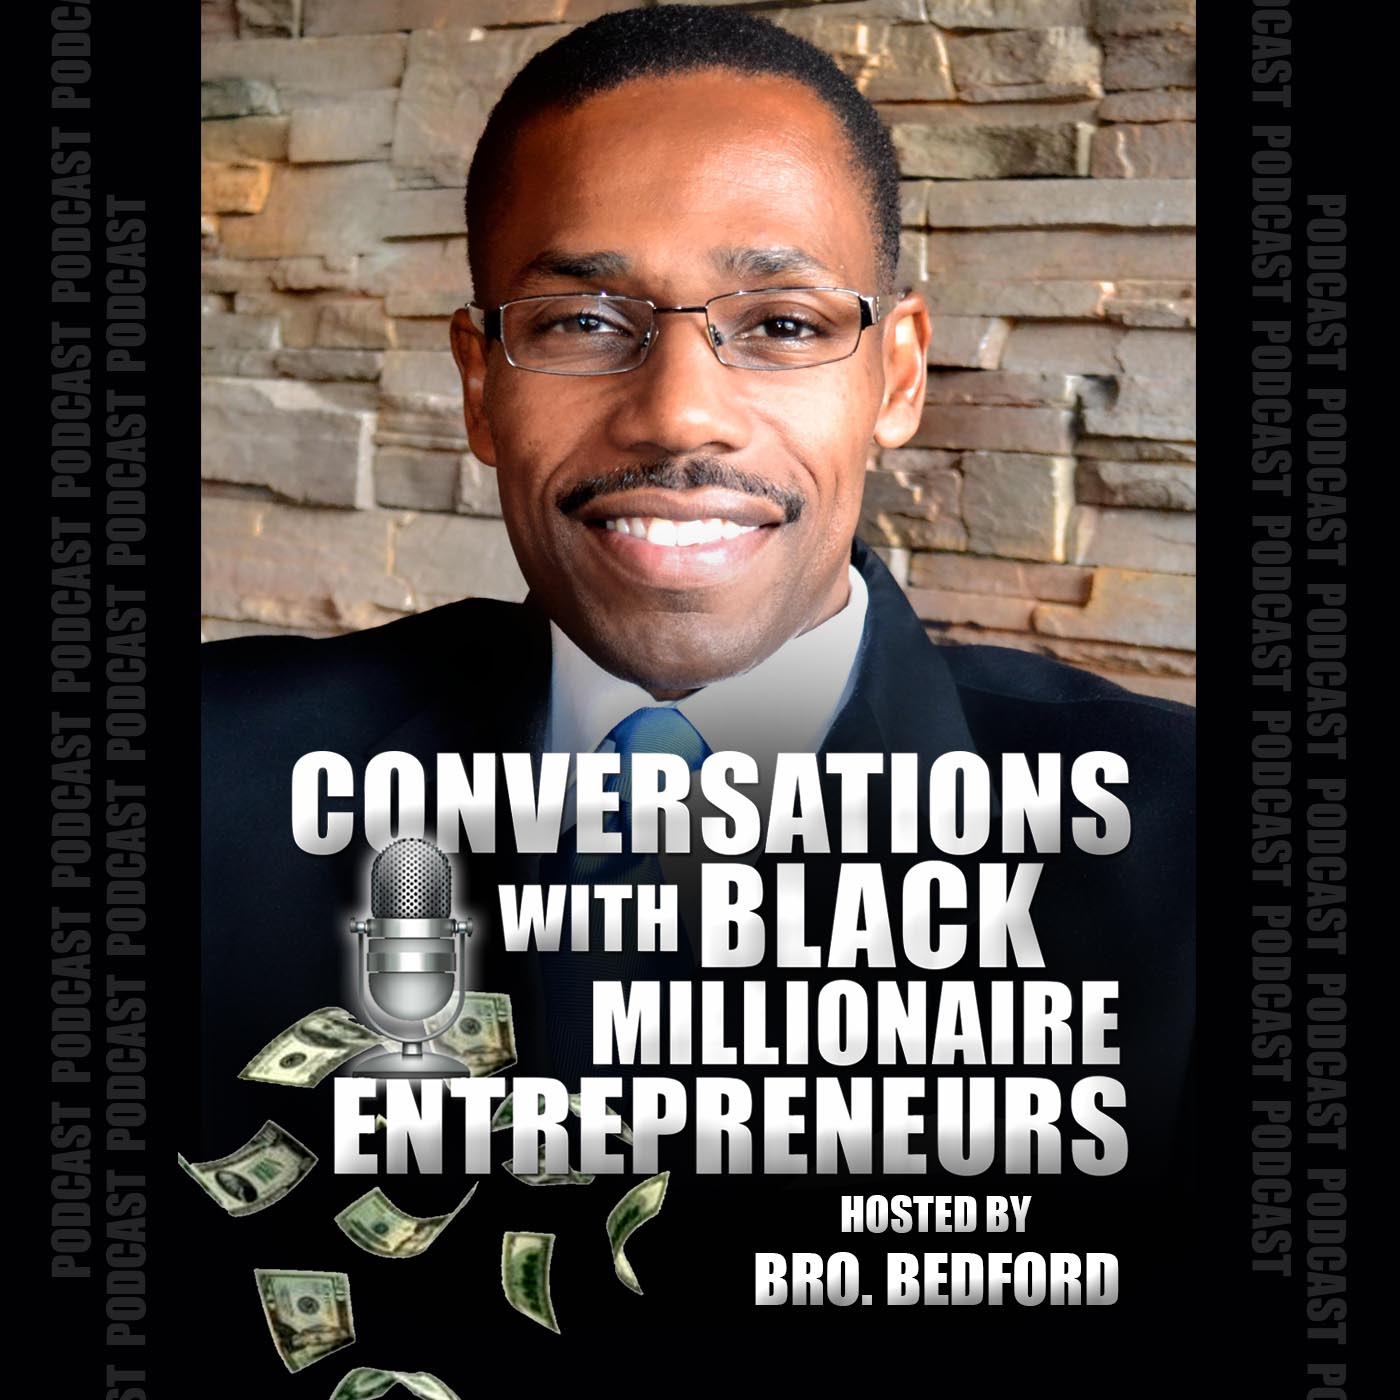 Conversations With Black Millionaire Entrepreneurs